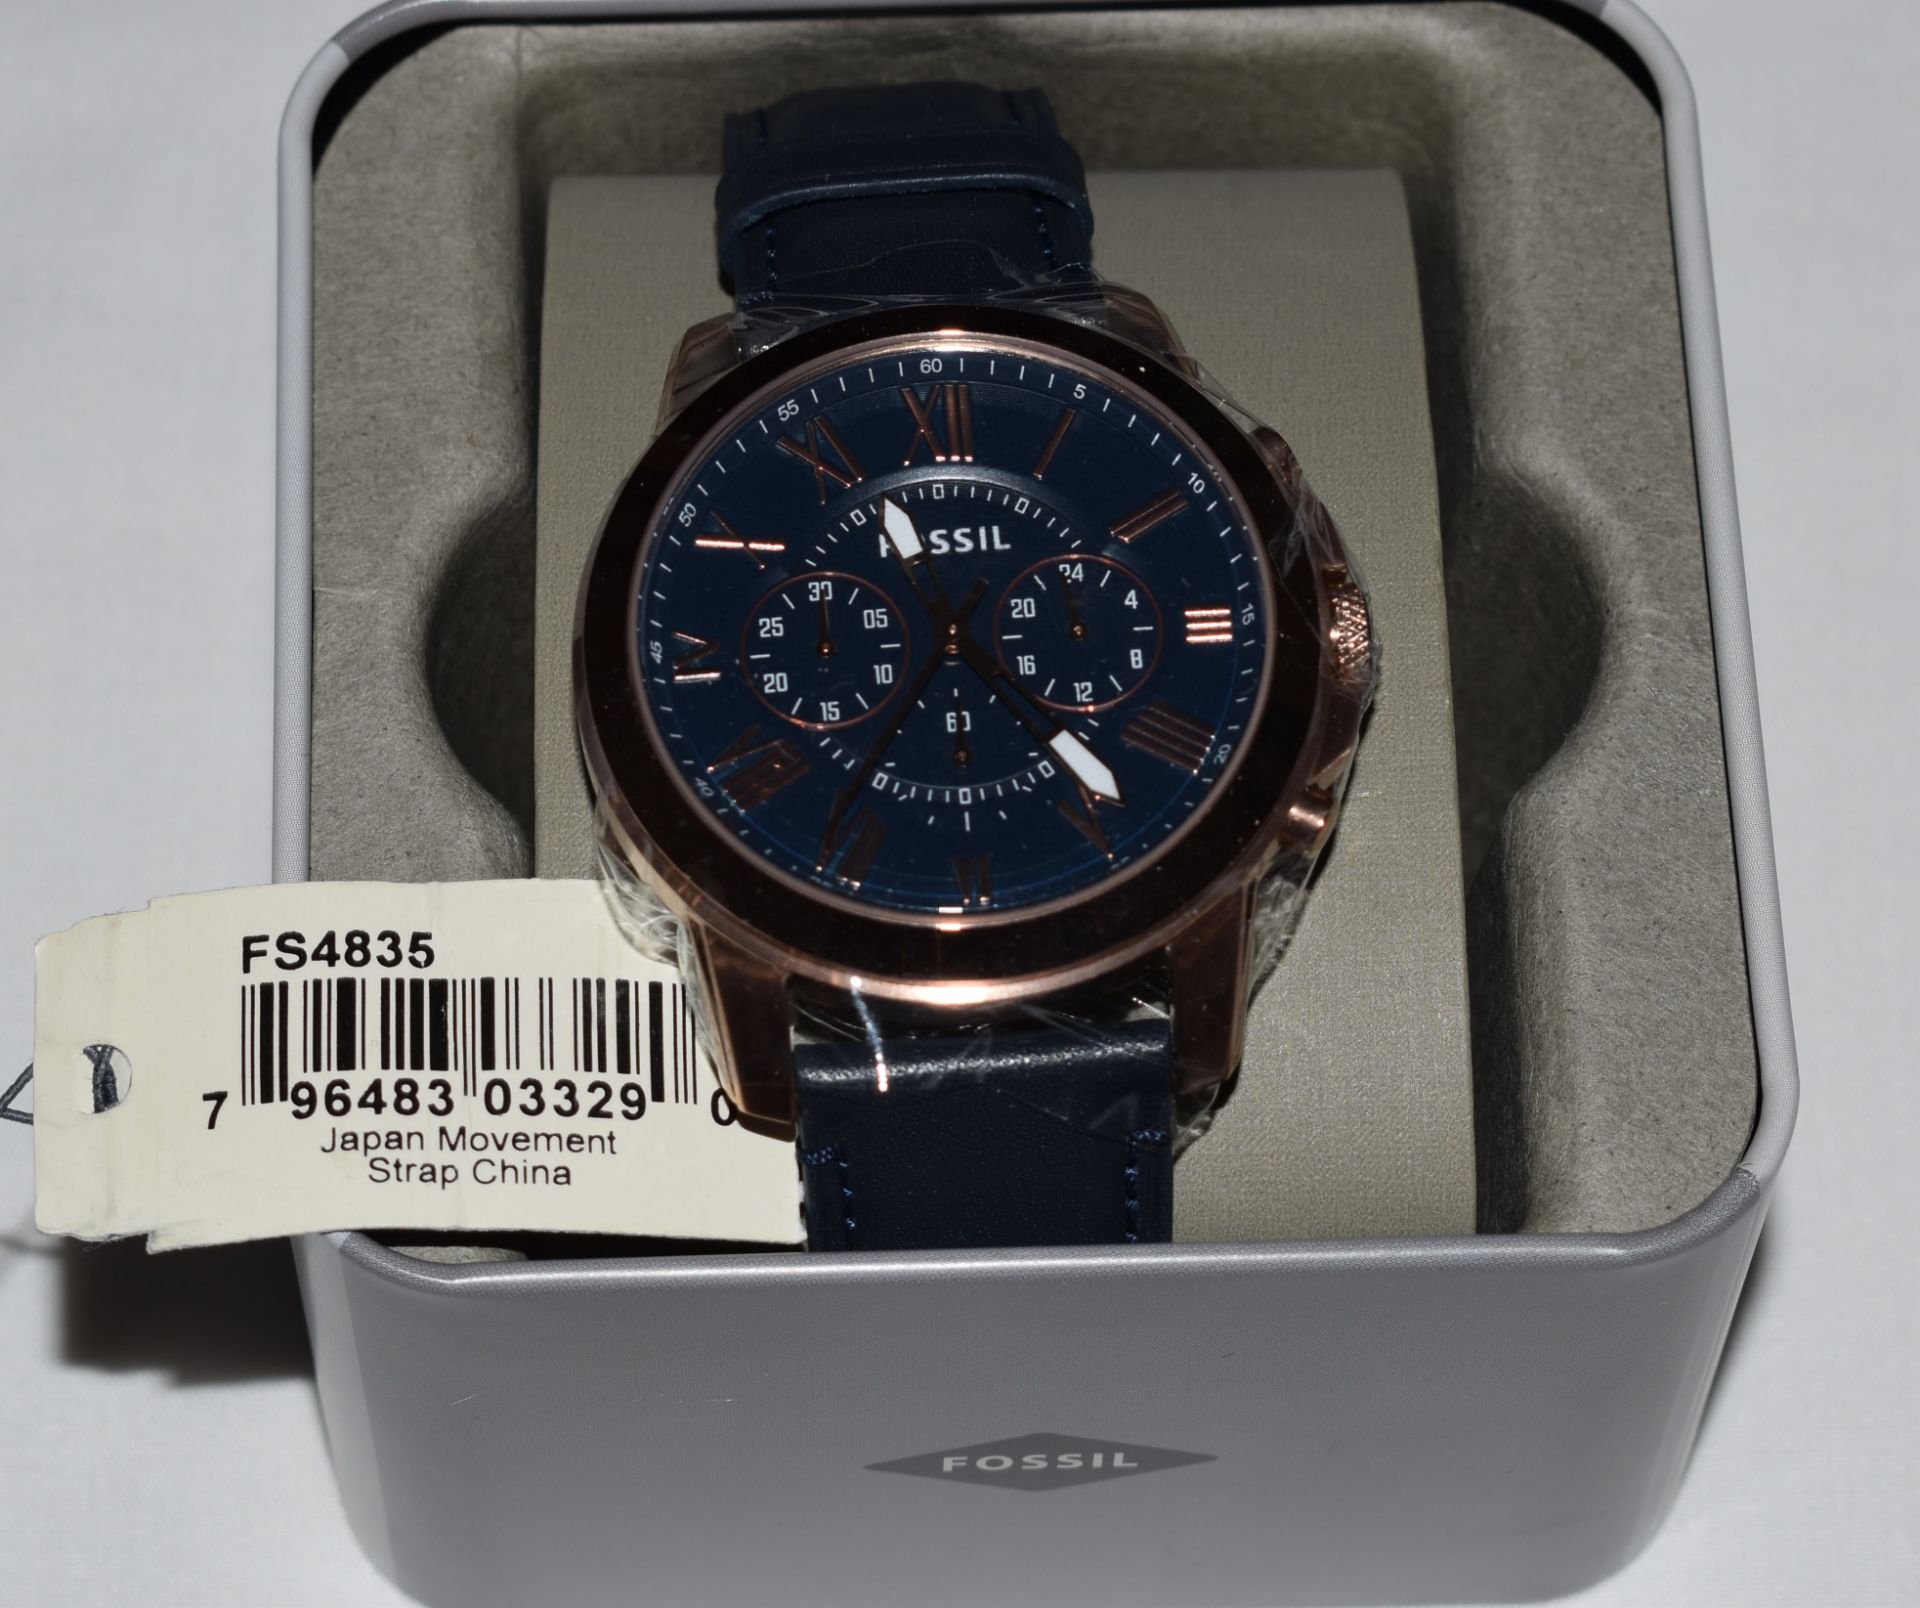 Fossil Men's Watch FS 4835 - Image 2 of 2